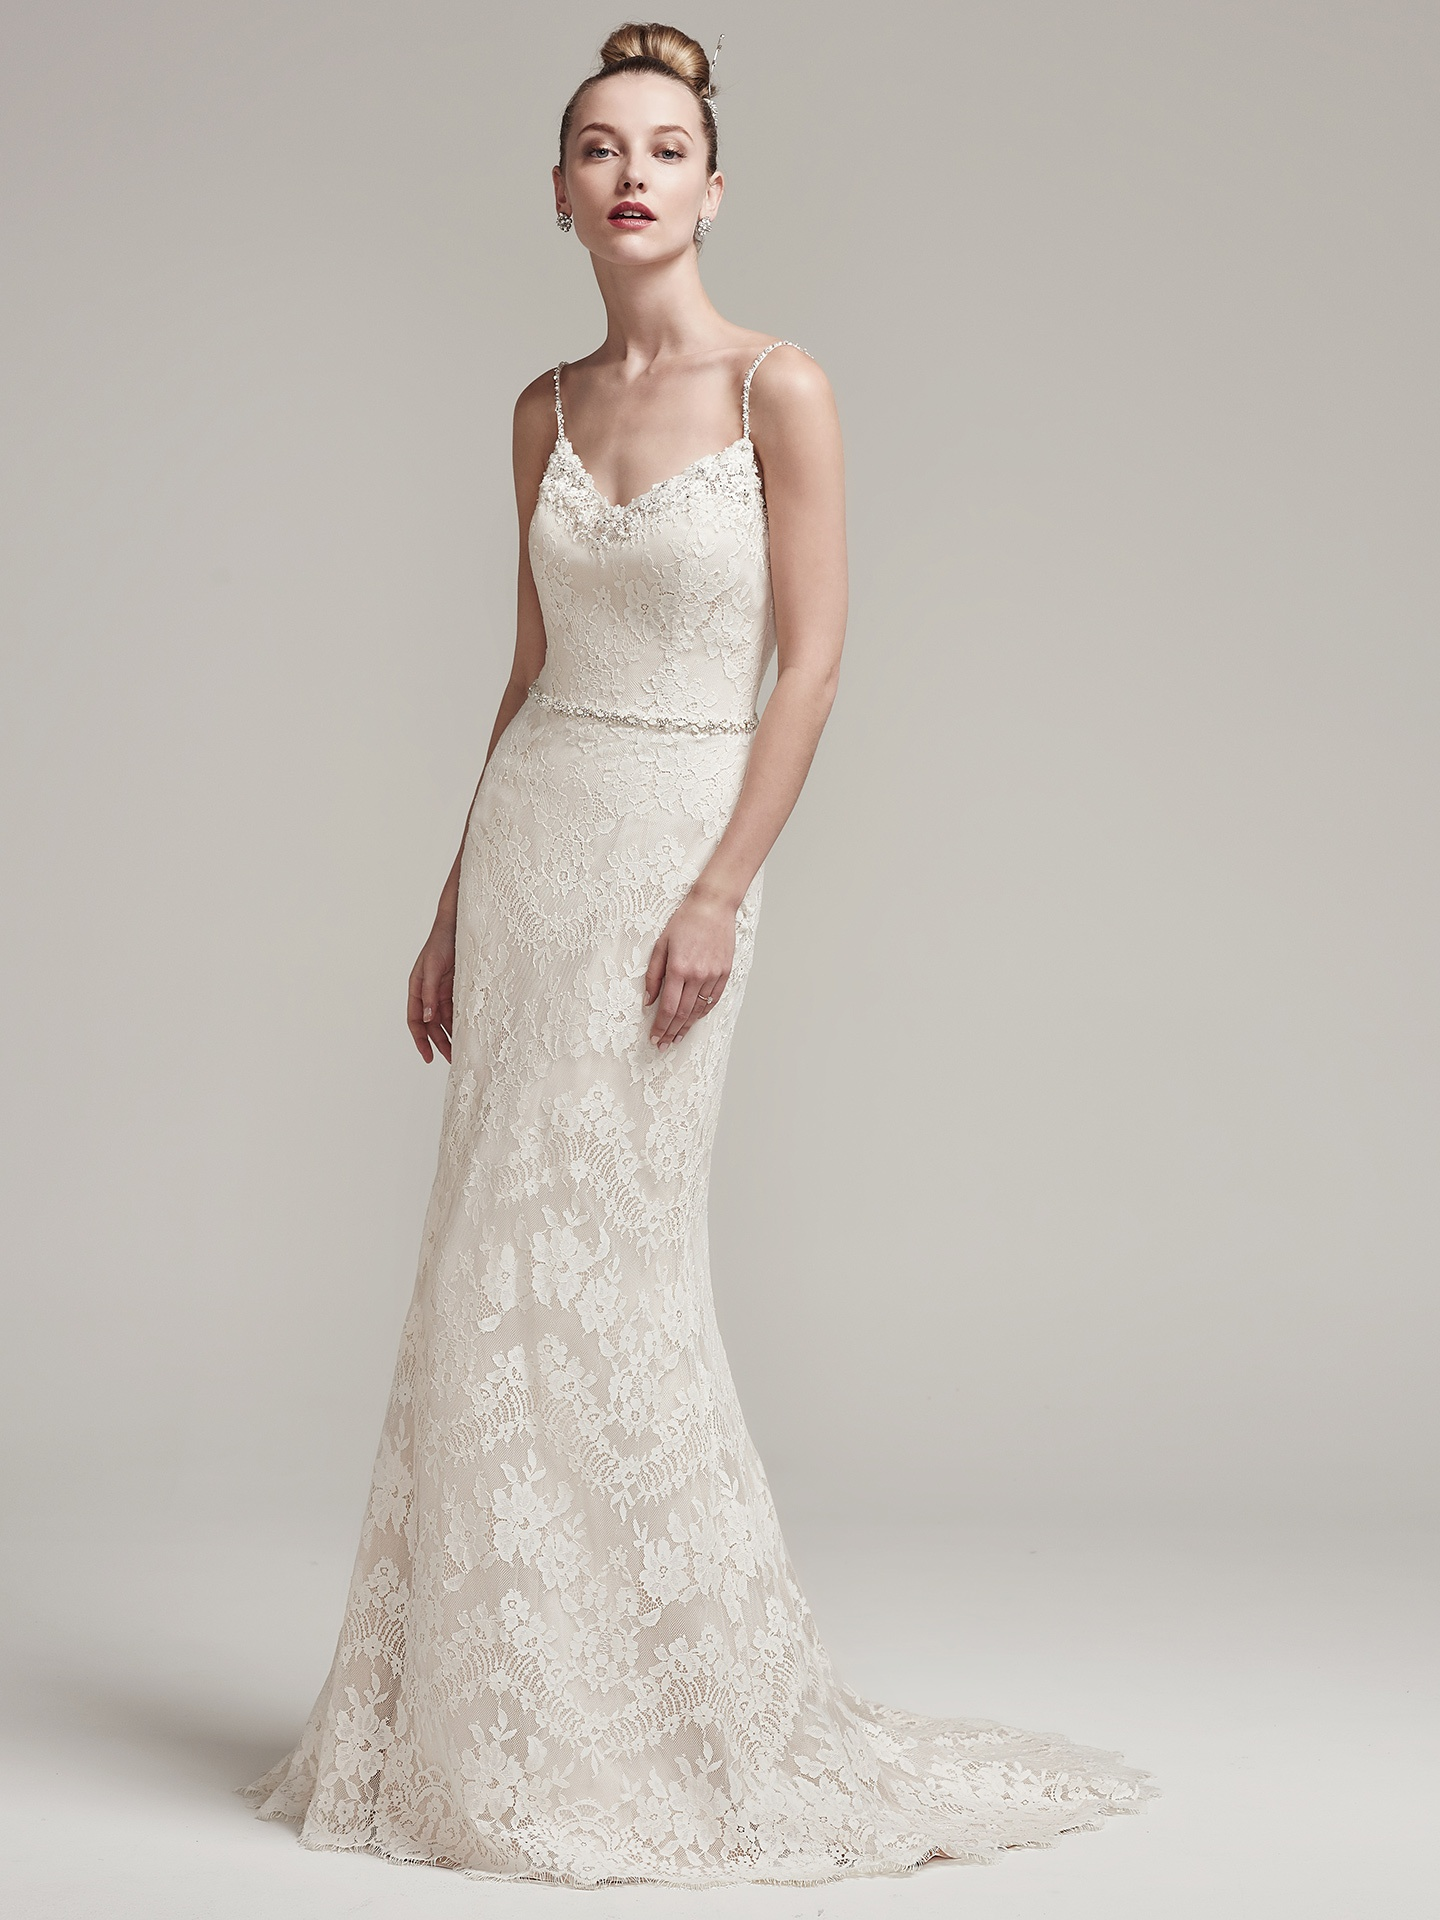 Ester by Sottero and Midgley: Wedding Dress with Chic Spaghetti Straps